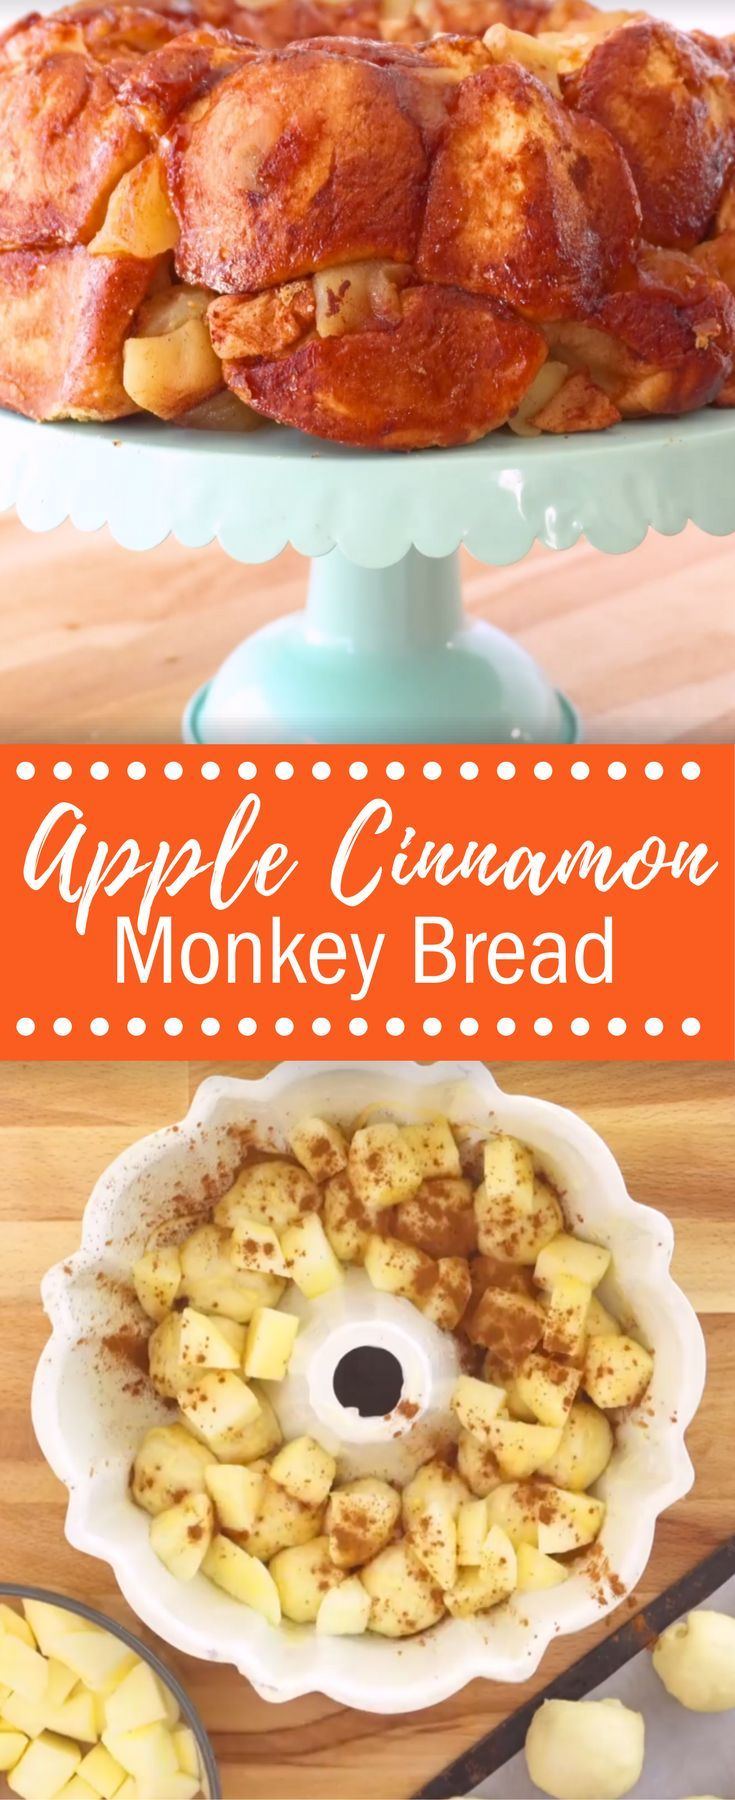 What could be more fun than a pull-apart bread loaded with apples and fragrant honey? Check out our delicious Apple Cinnamon Challah Monkey Bread!